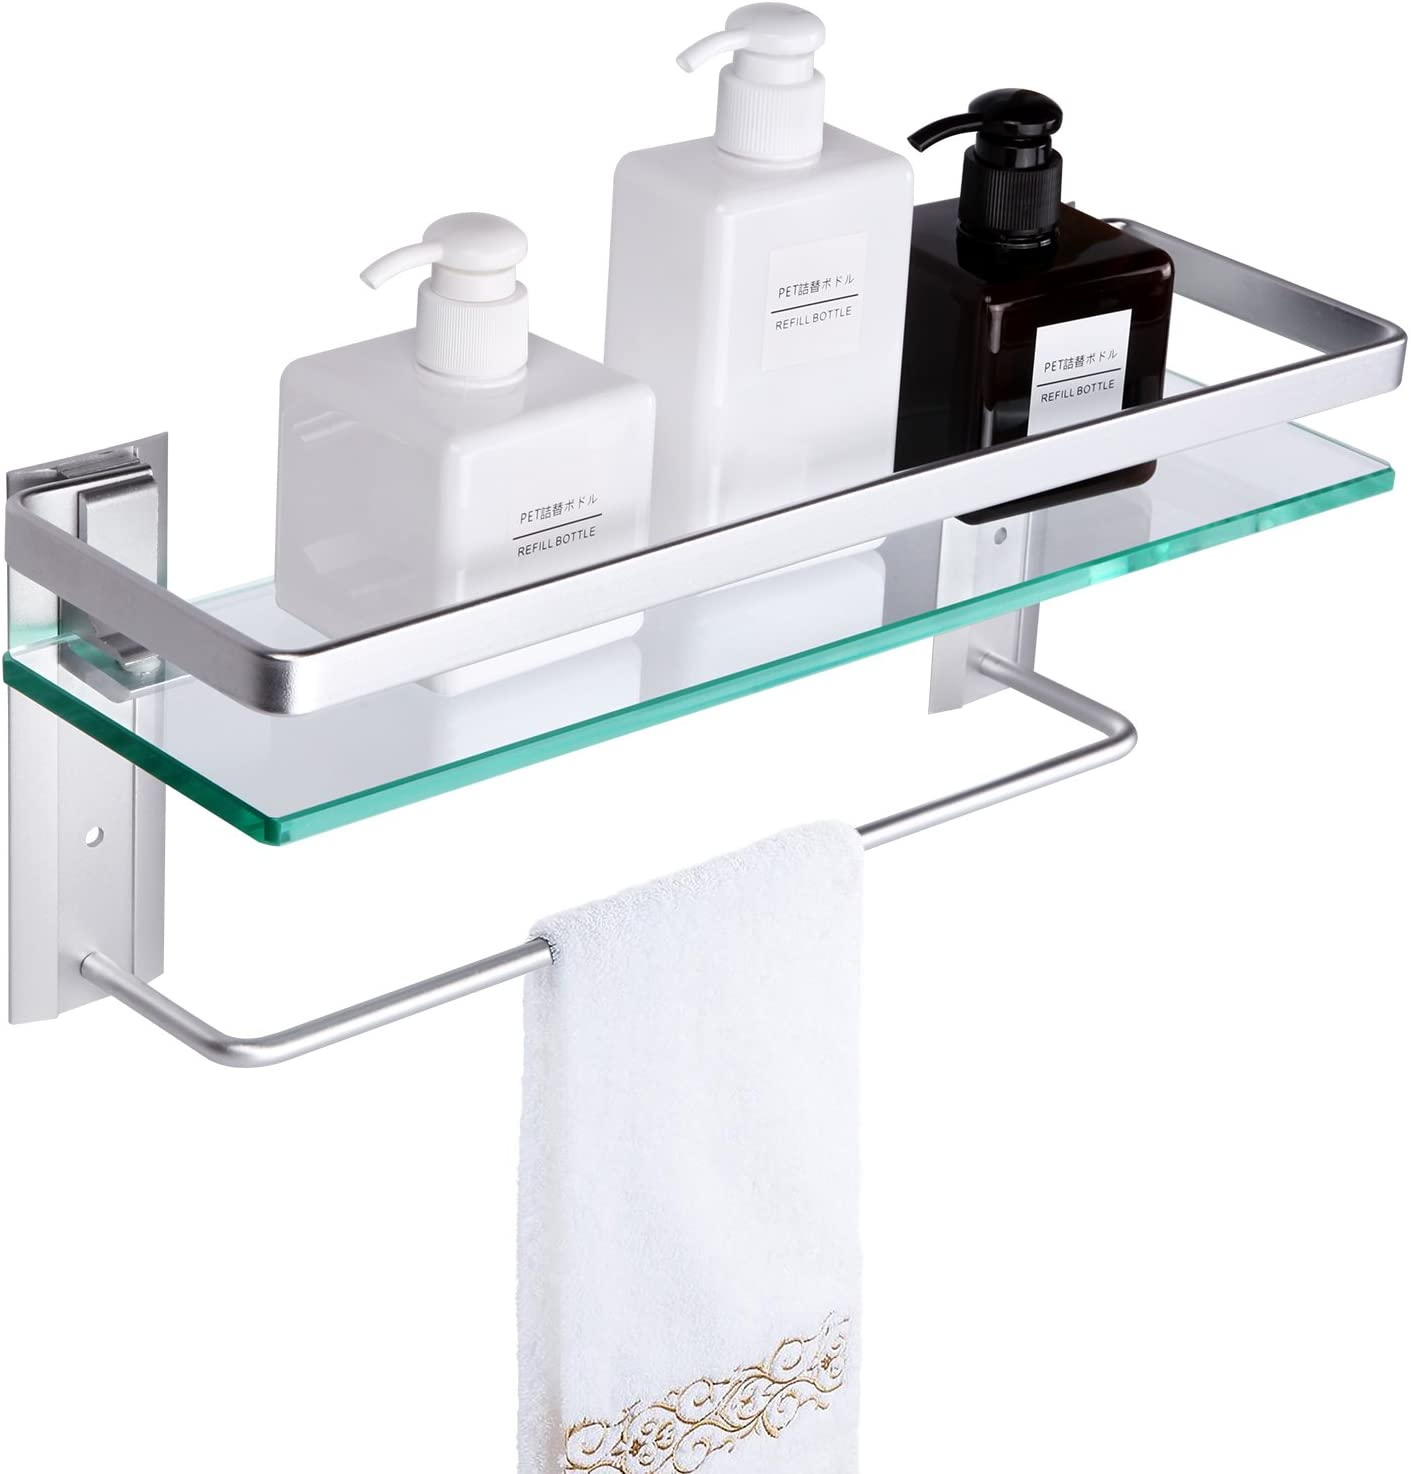 Amazon Com Vdomus Tempered Glass Bathroom Shelf With Towel Bar Wall Mounted Shower Storage 15 2 By 4 5 Inches Brushed Silver Finish Kitchen Dining